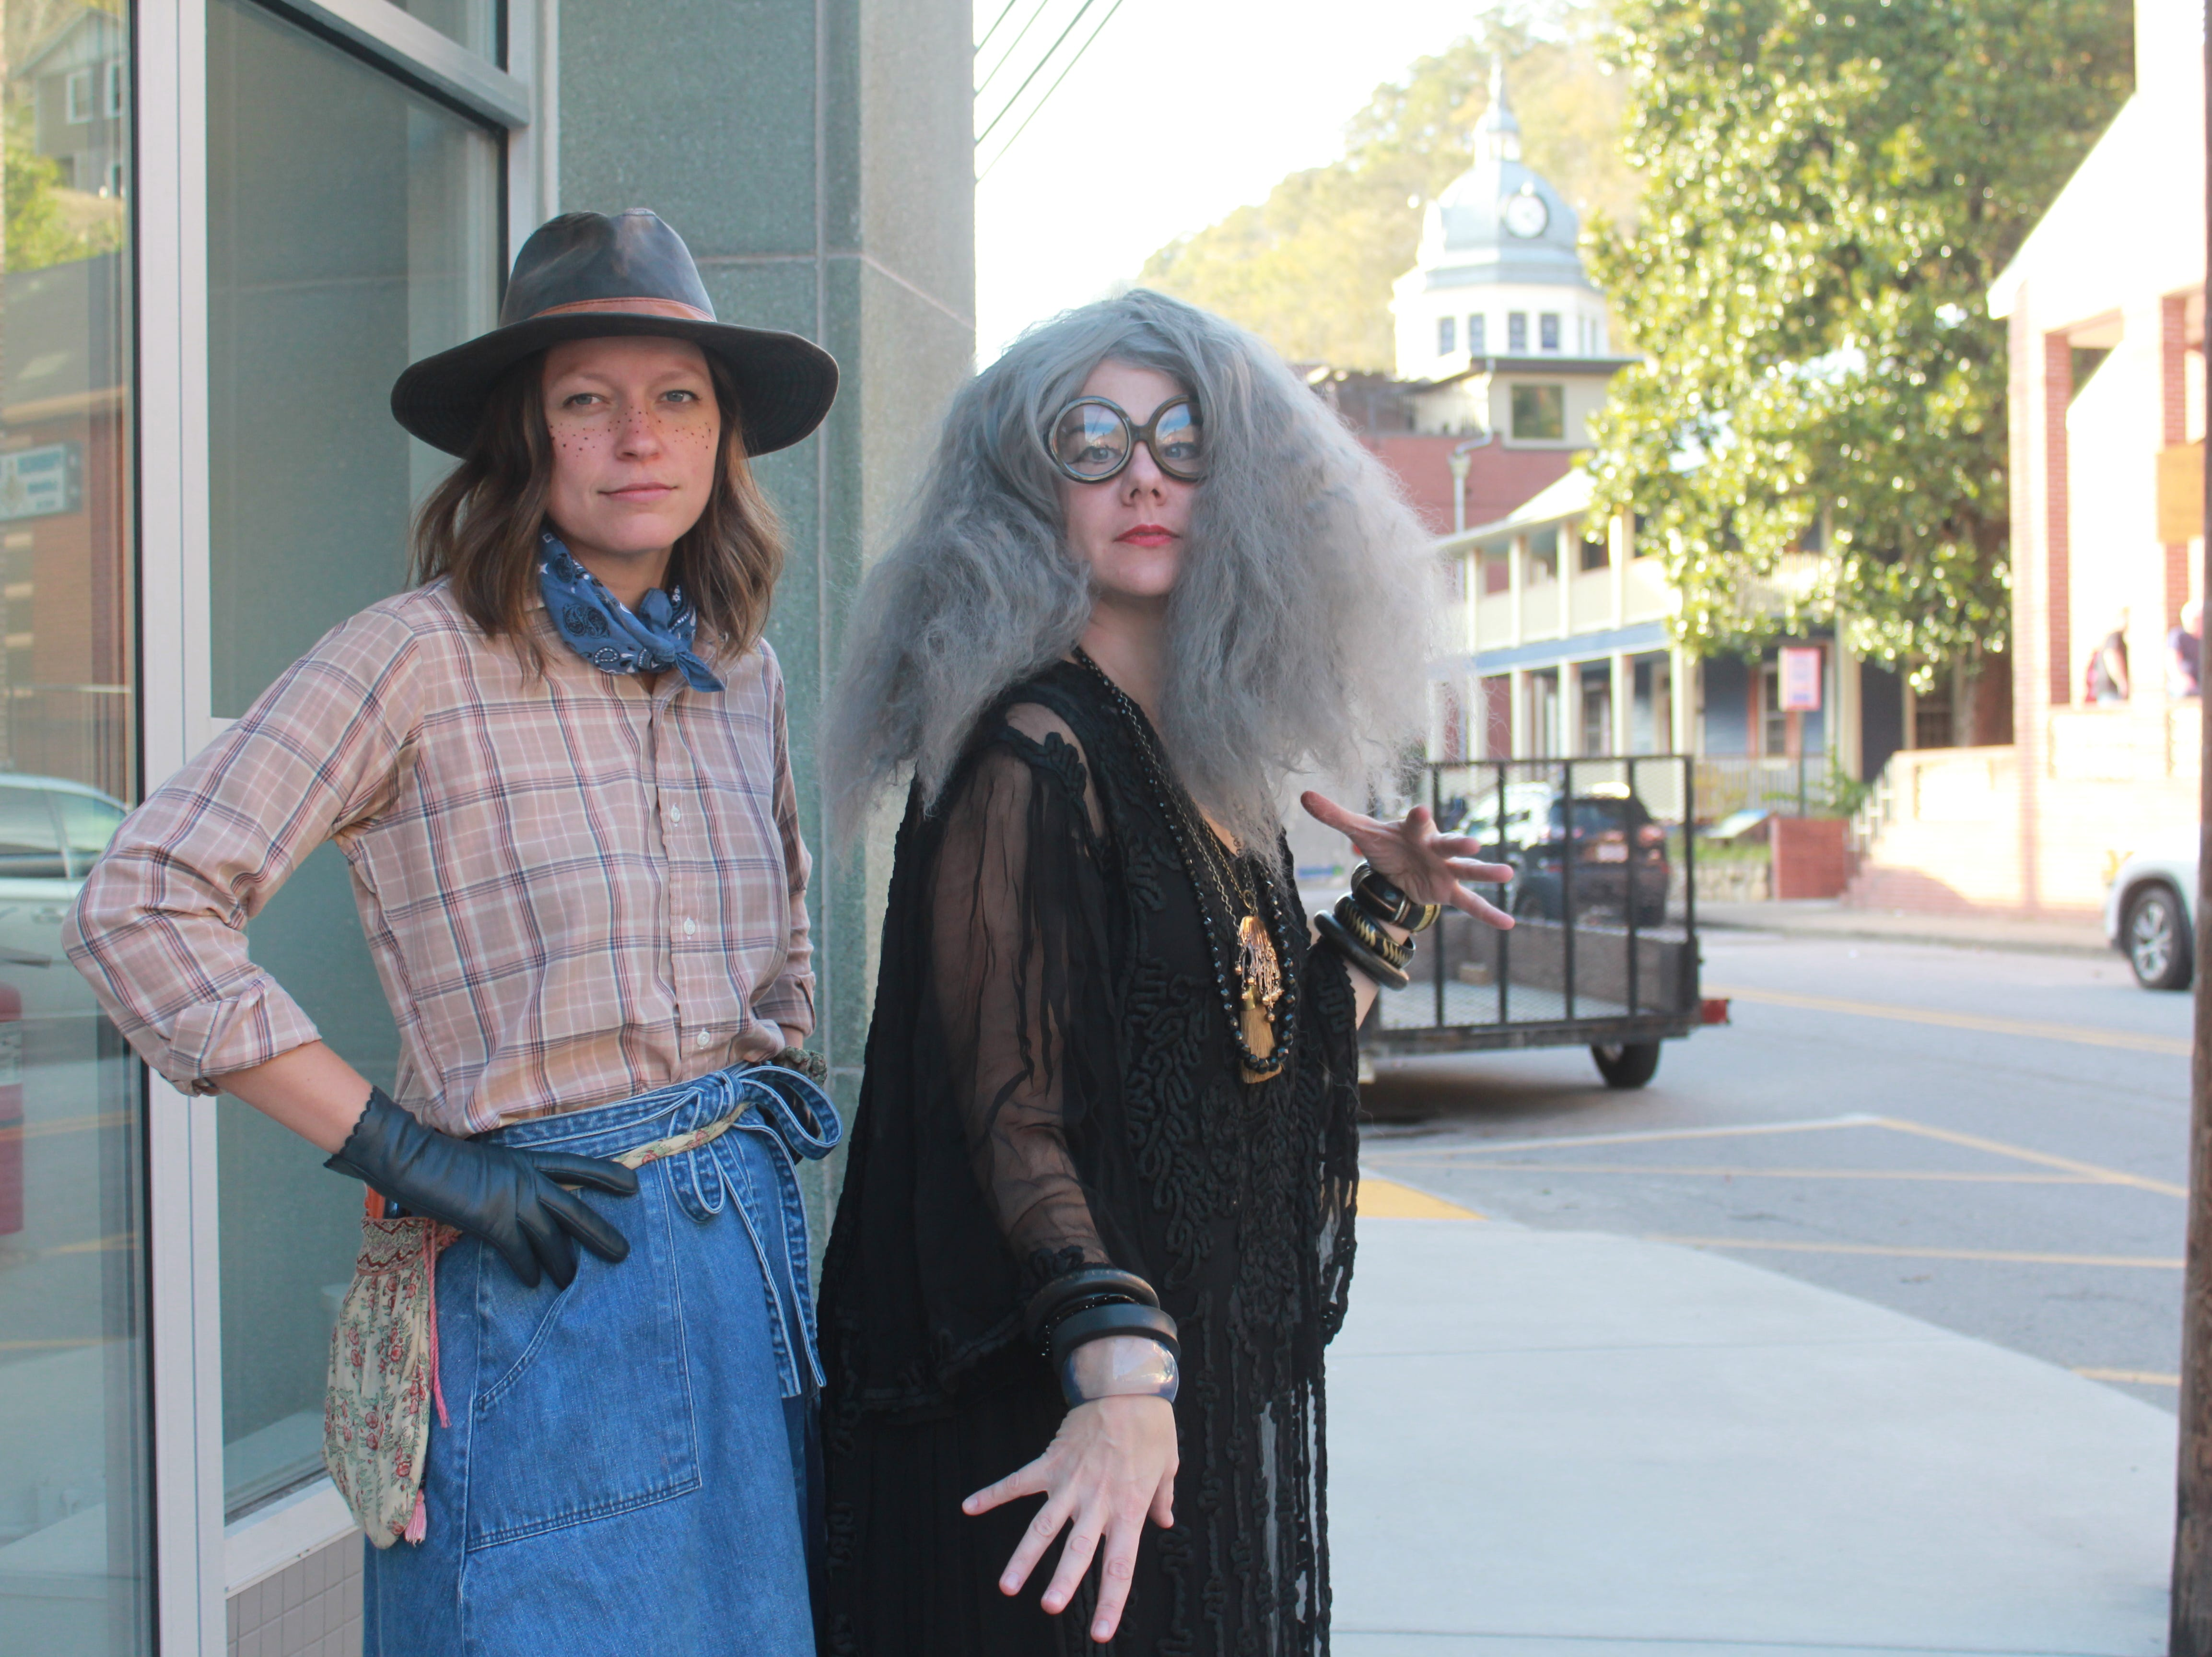 Downtown Marshall business owners Melissa Robinson as Calamity Jane and Angela Finney as a mystical medium